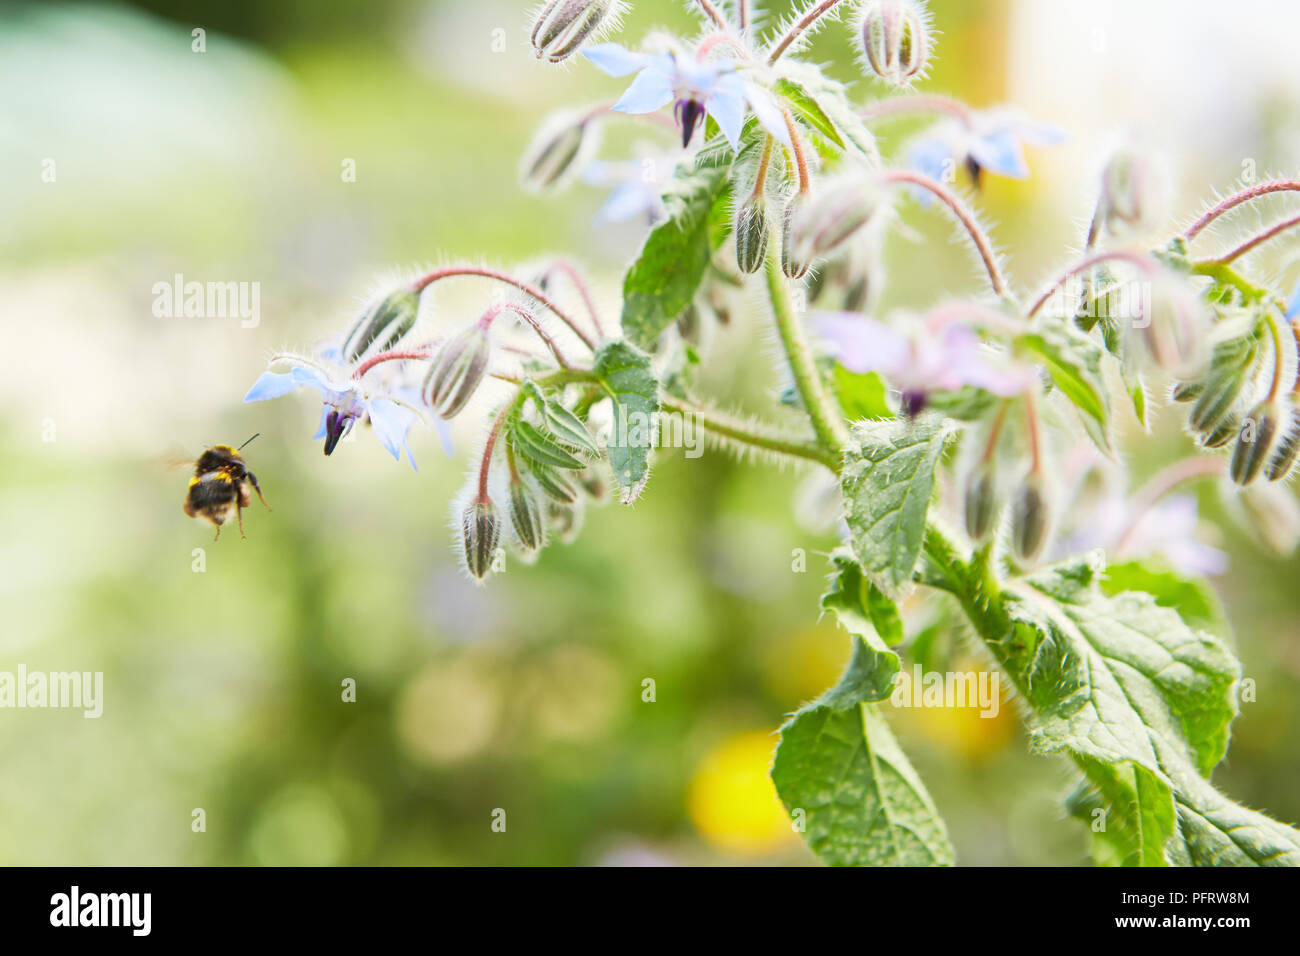 Bee attracted by borage flower - Stock Image